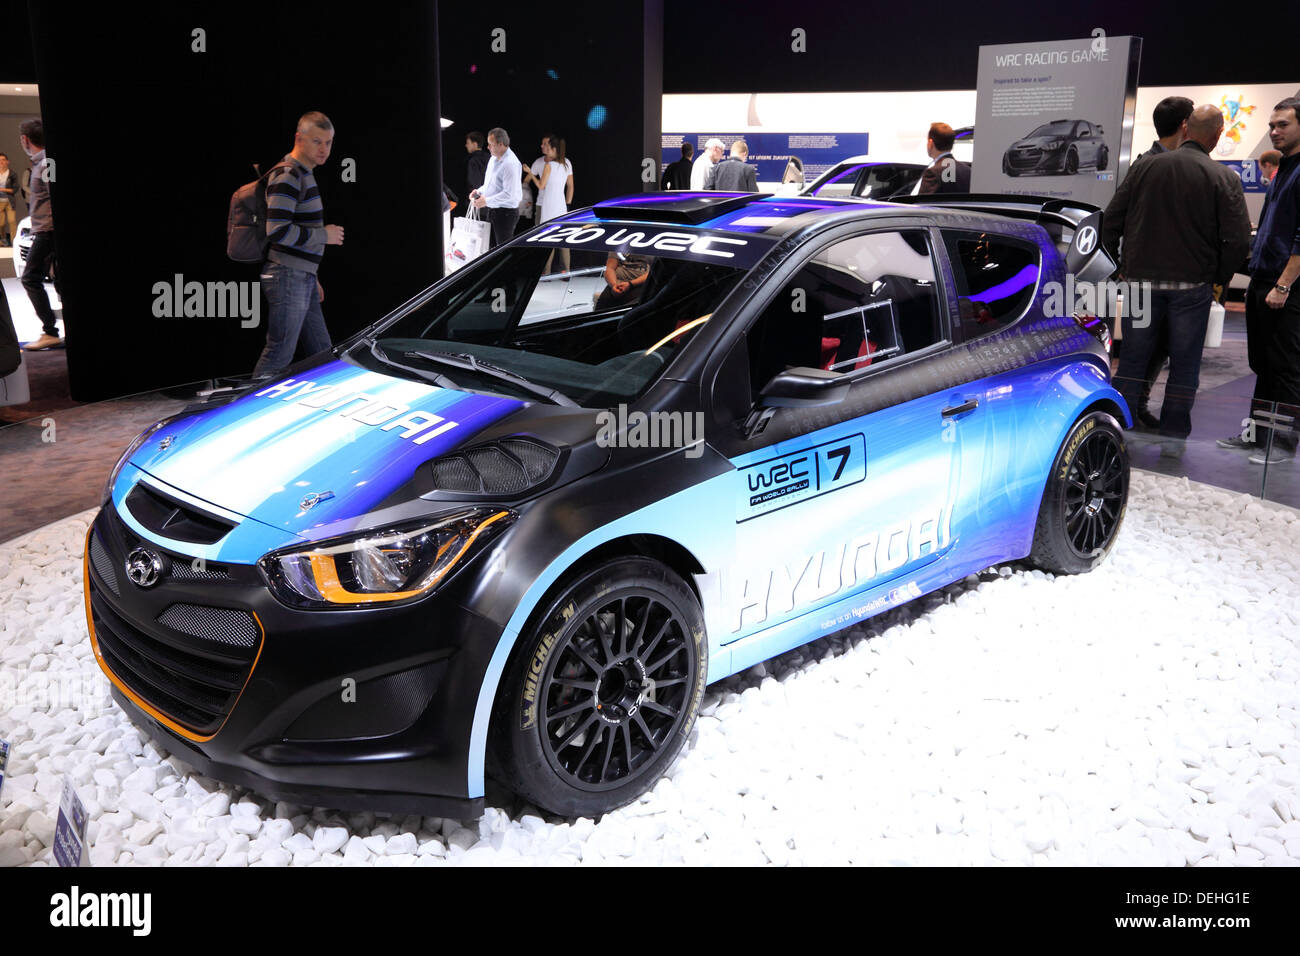 International Motor Show in Frankfurt, Germany. Hyundai presenting the i20 WRC Rallye Racing Car at the 65th IAA in Frankfurt - Stock Image